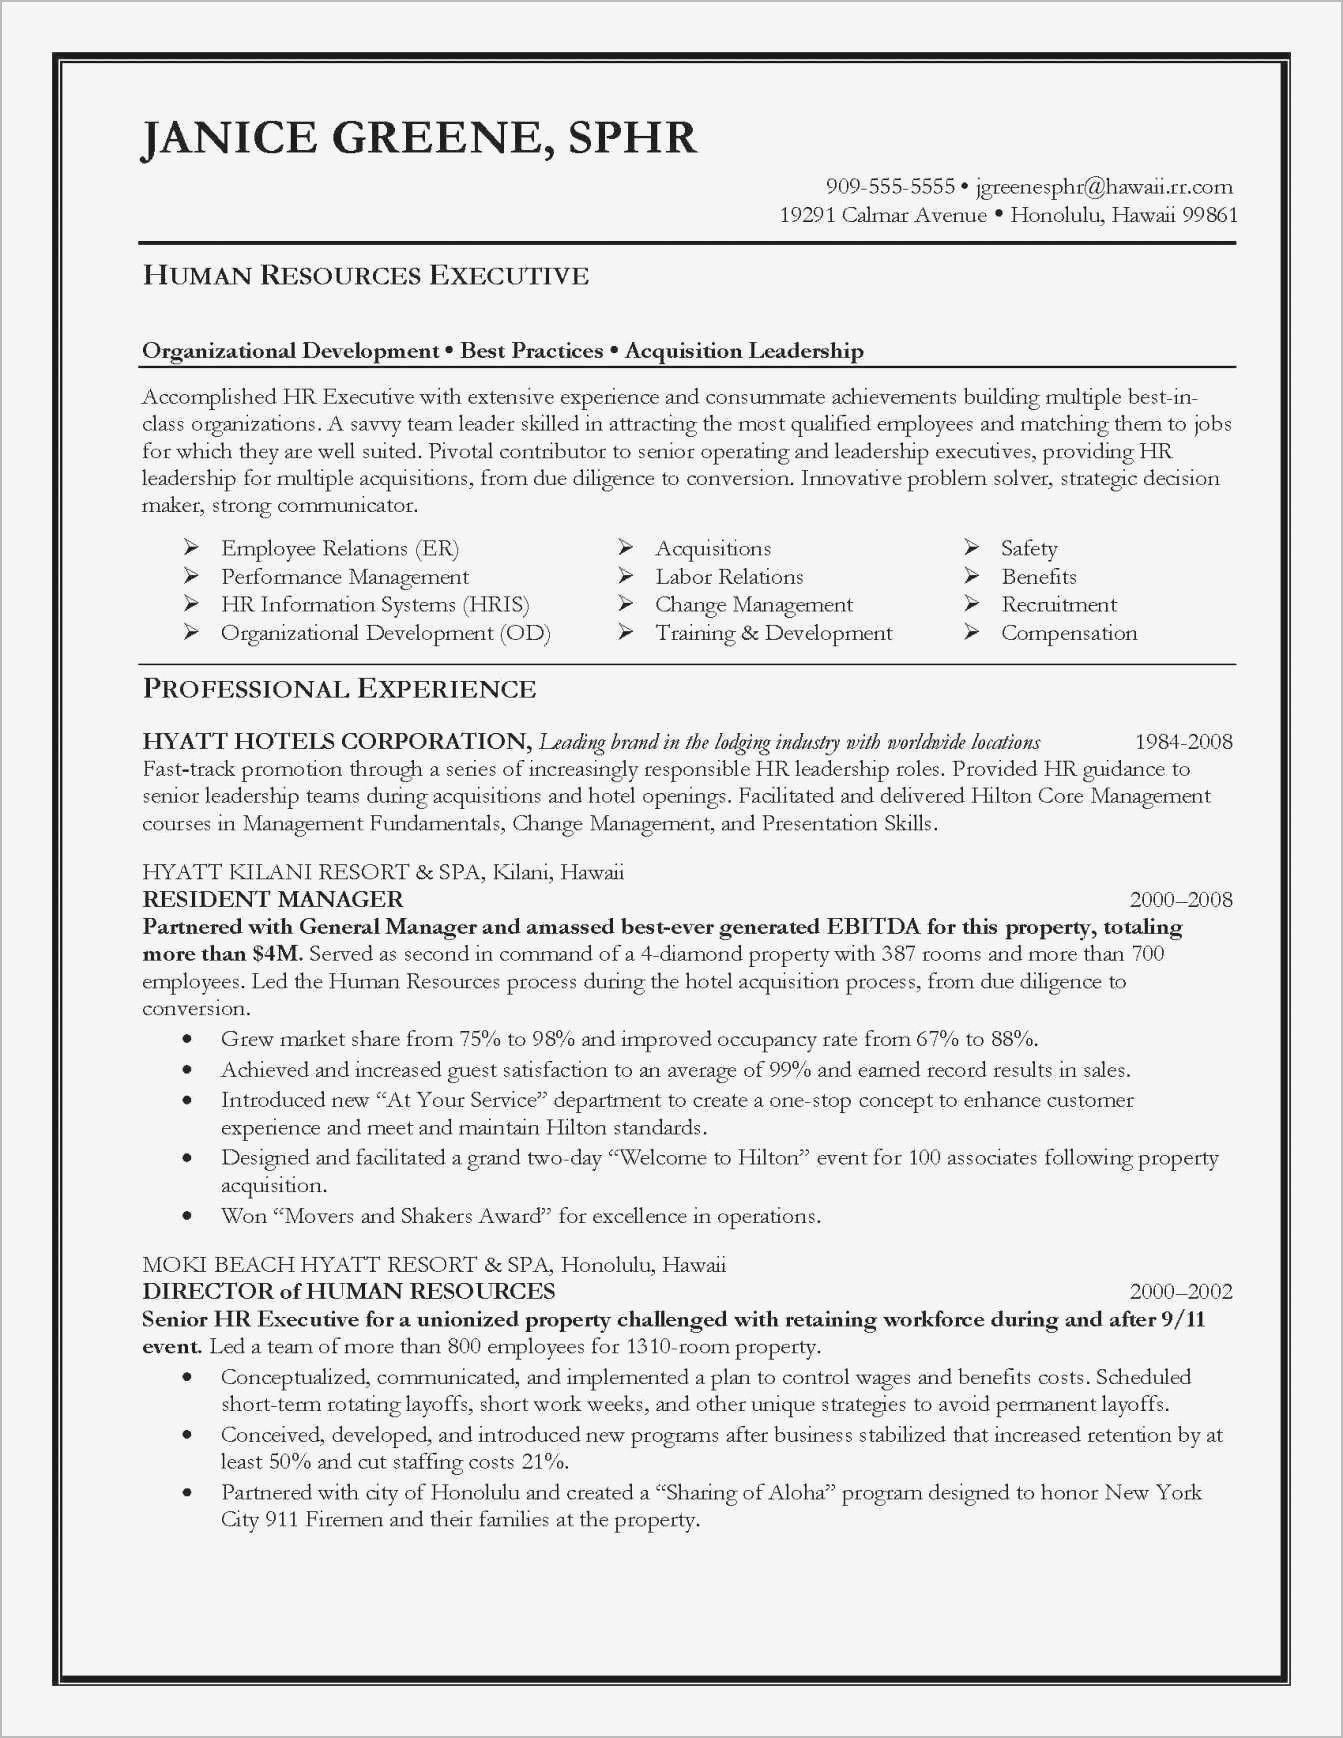 Java Developer Resume - 20 Resume A Java Developer